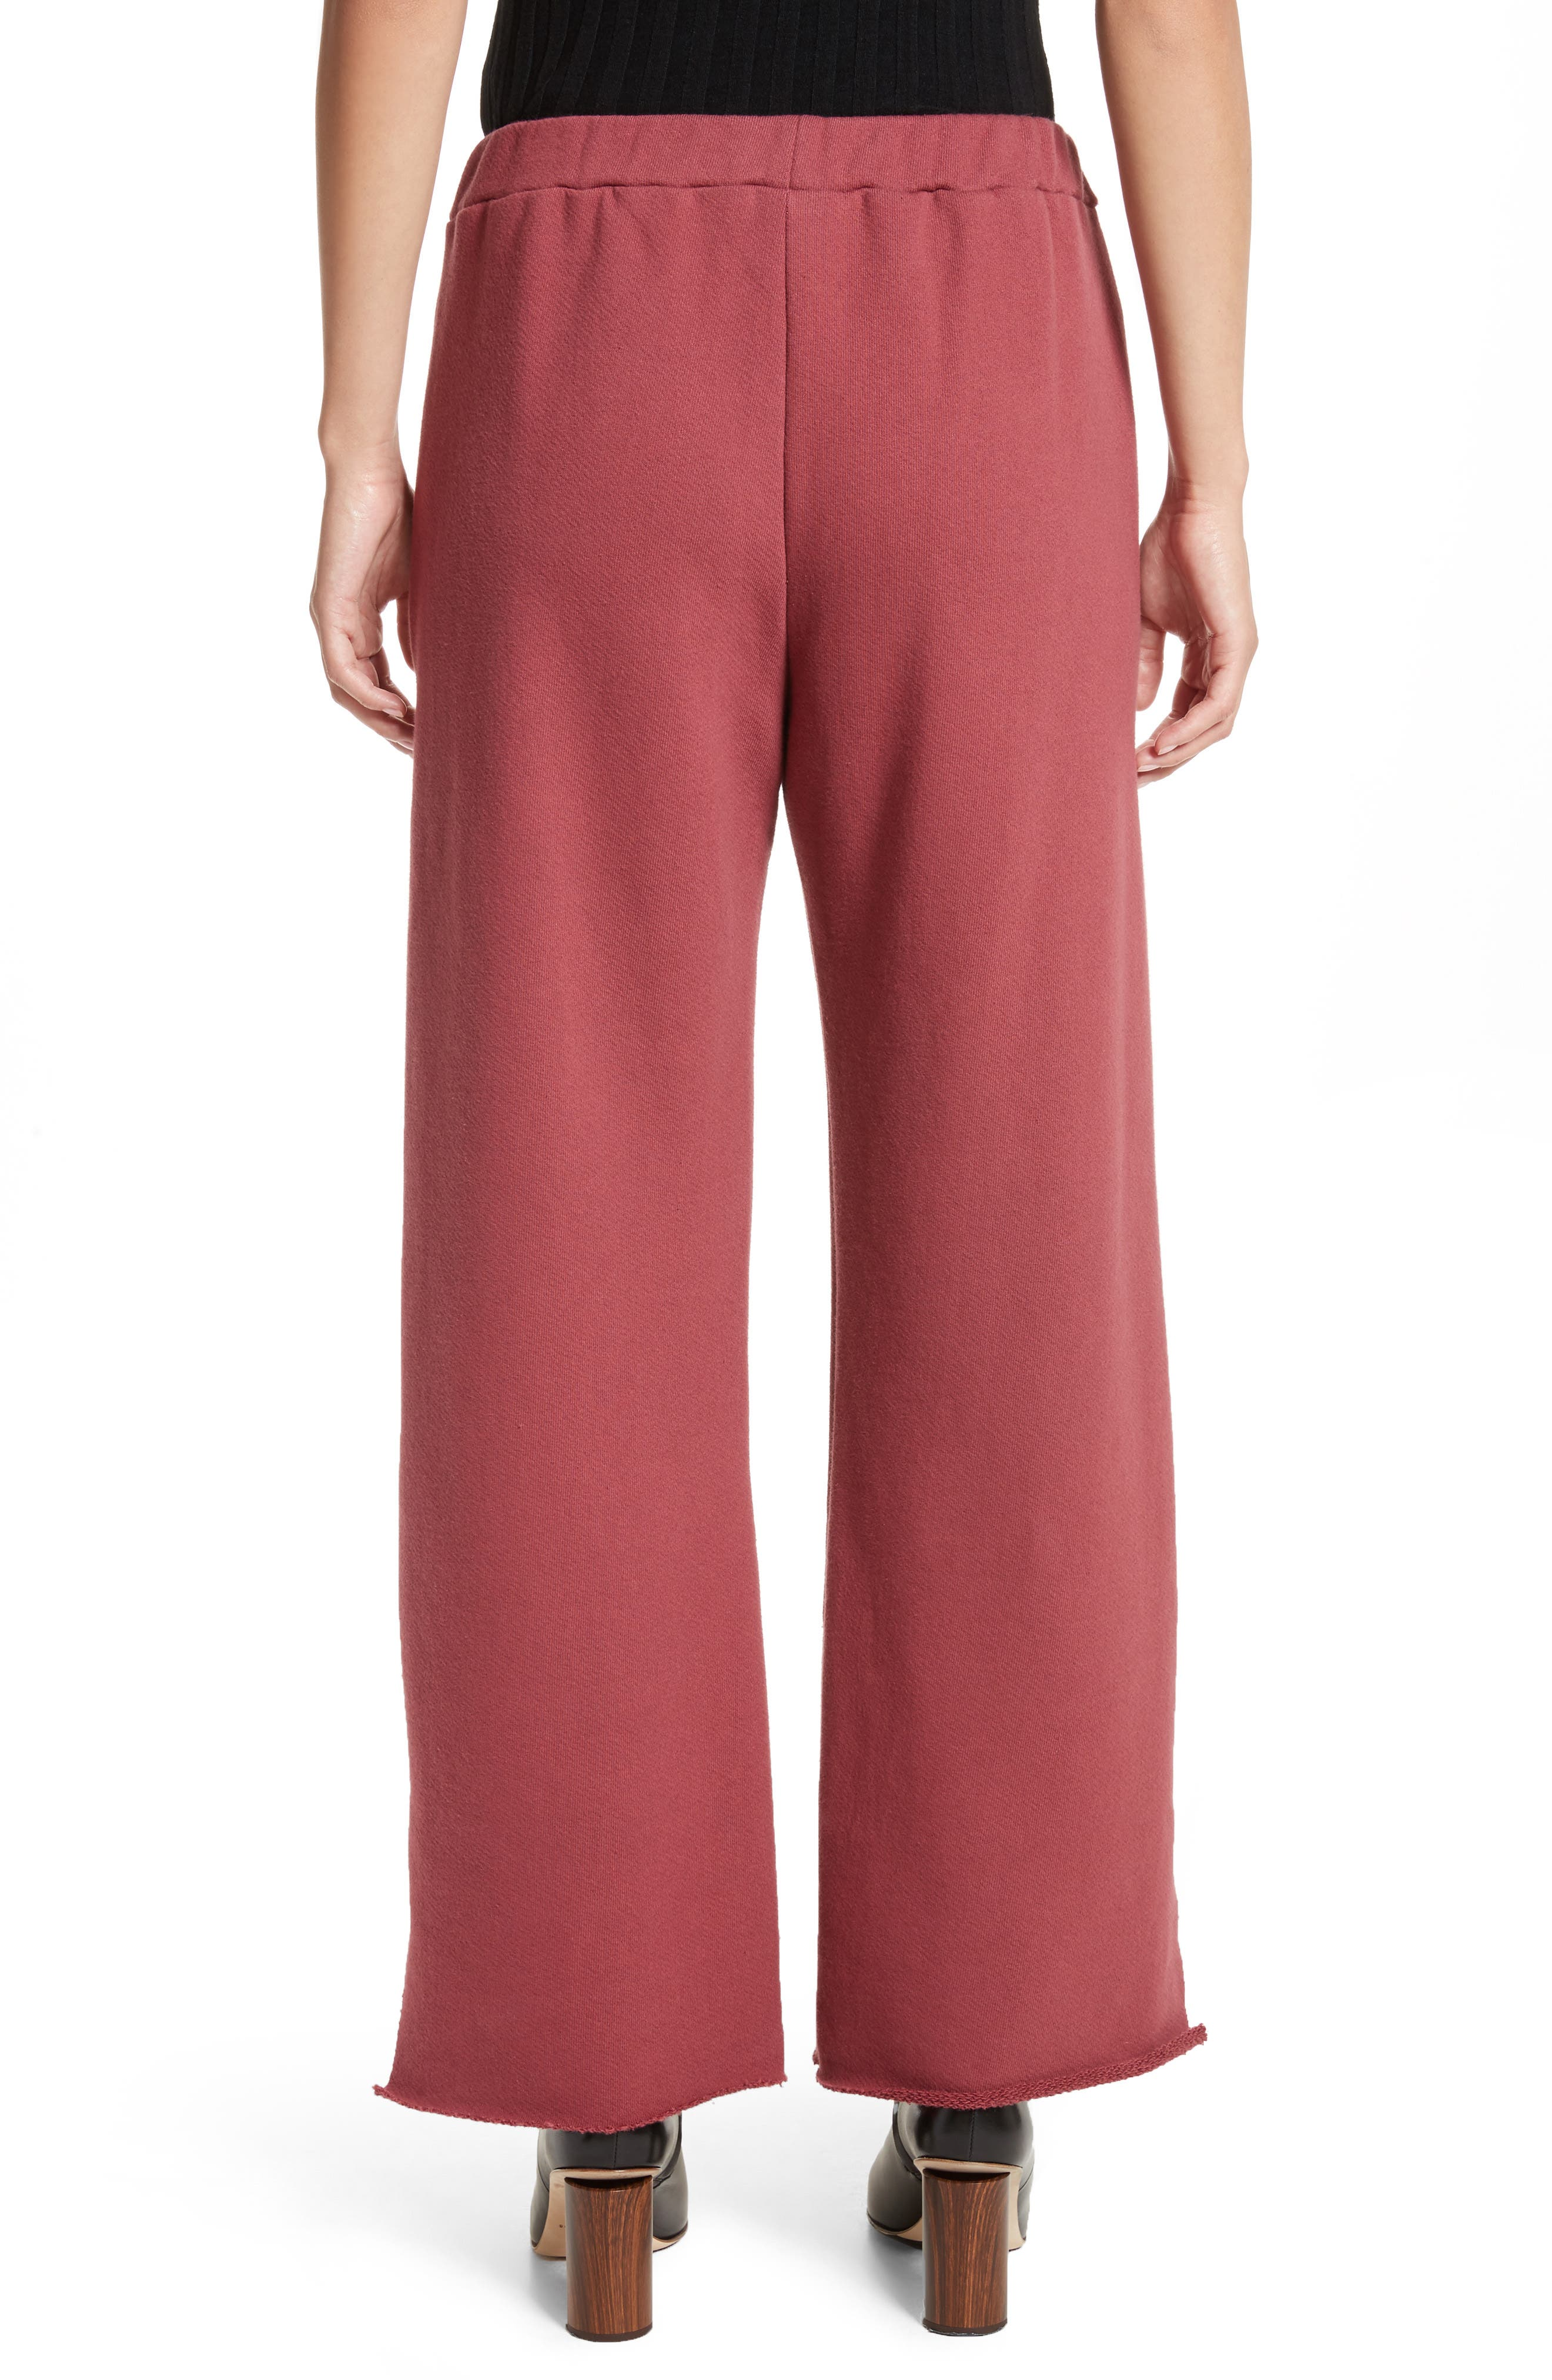 Canal French Terry Sweatpants,                             Alternate thumbnail 2, color,                             650